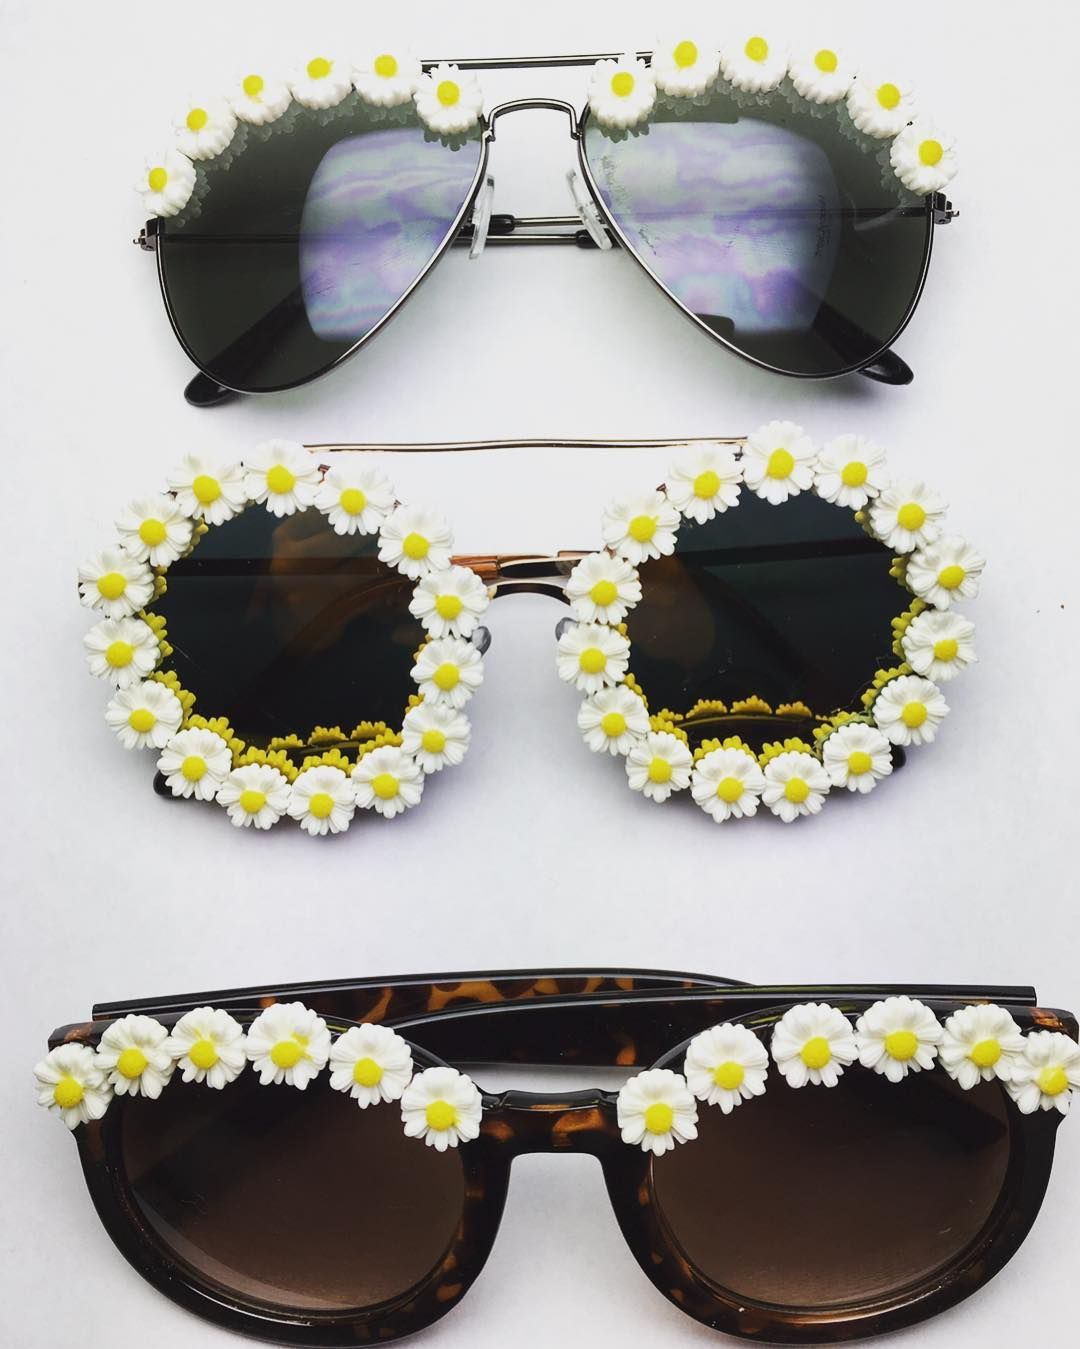 Fall in love with our Daisy collection for summer 💛 🌴 link in bio for more styles 🔝 #obsessedshades#flowersunglasses#coachella#festival#boho